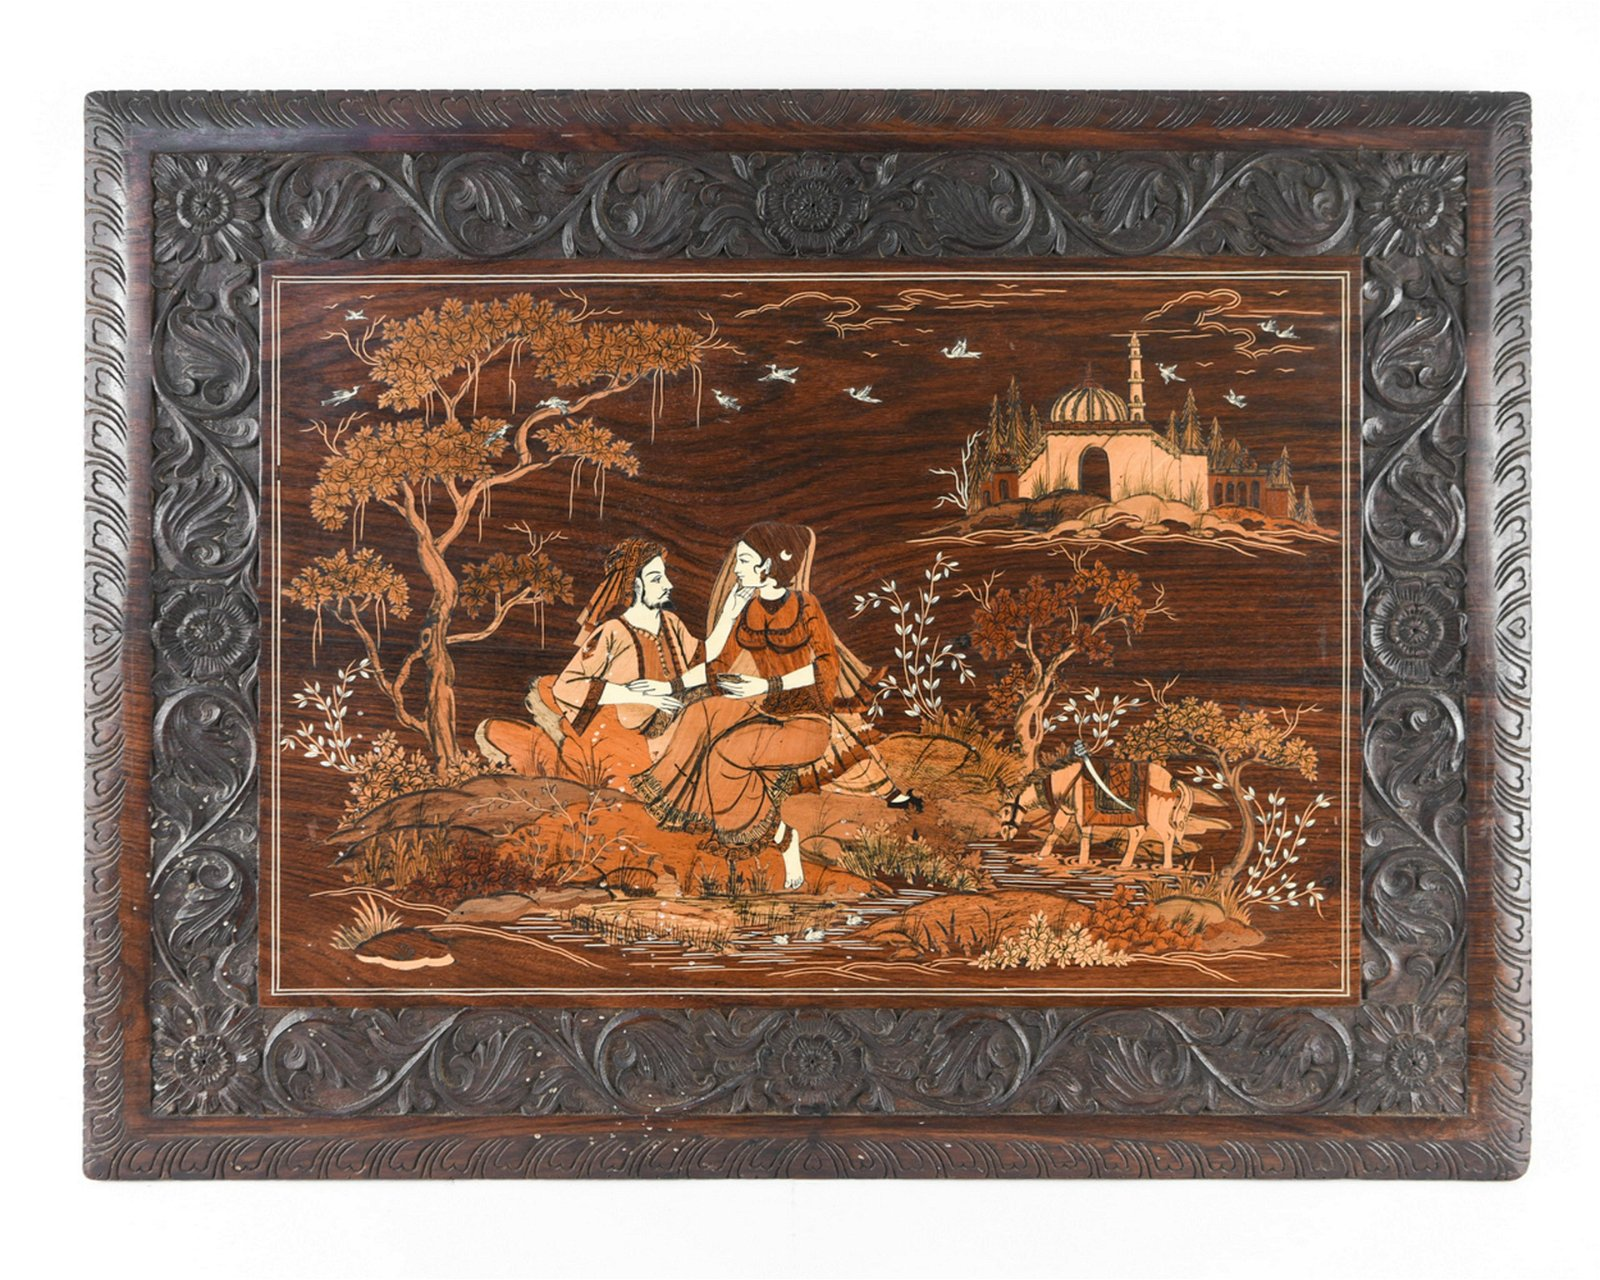 INDO-PERSIAN INLAID & CARVED WOOD PANEL